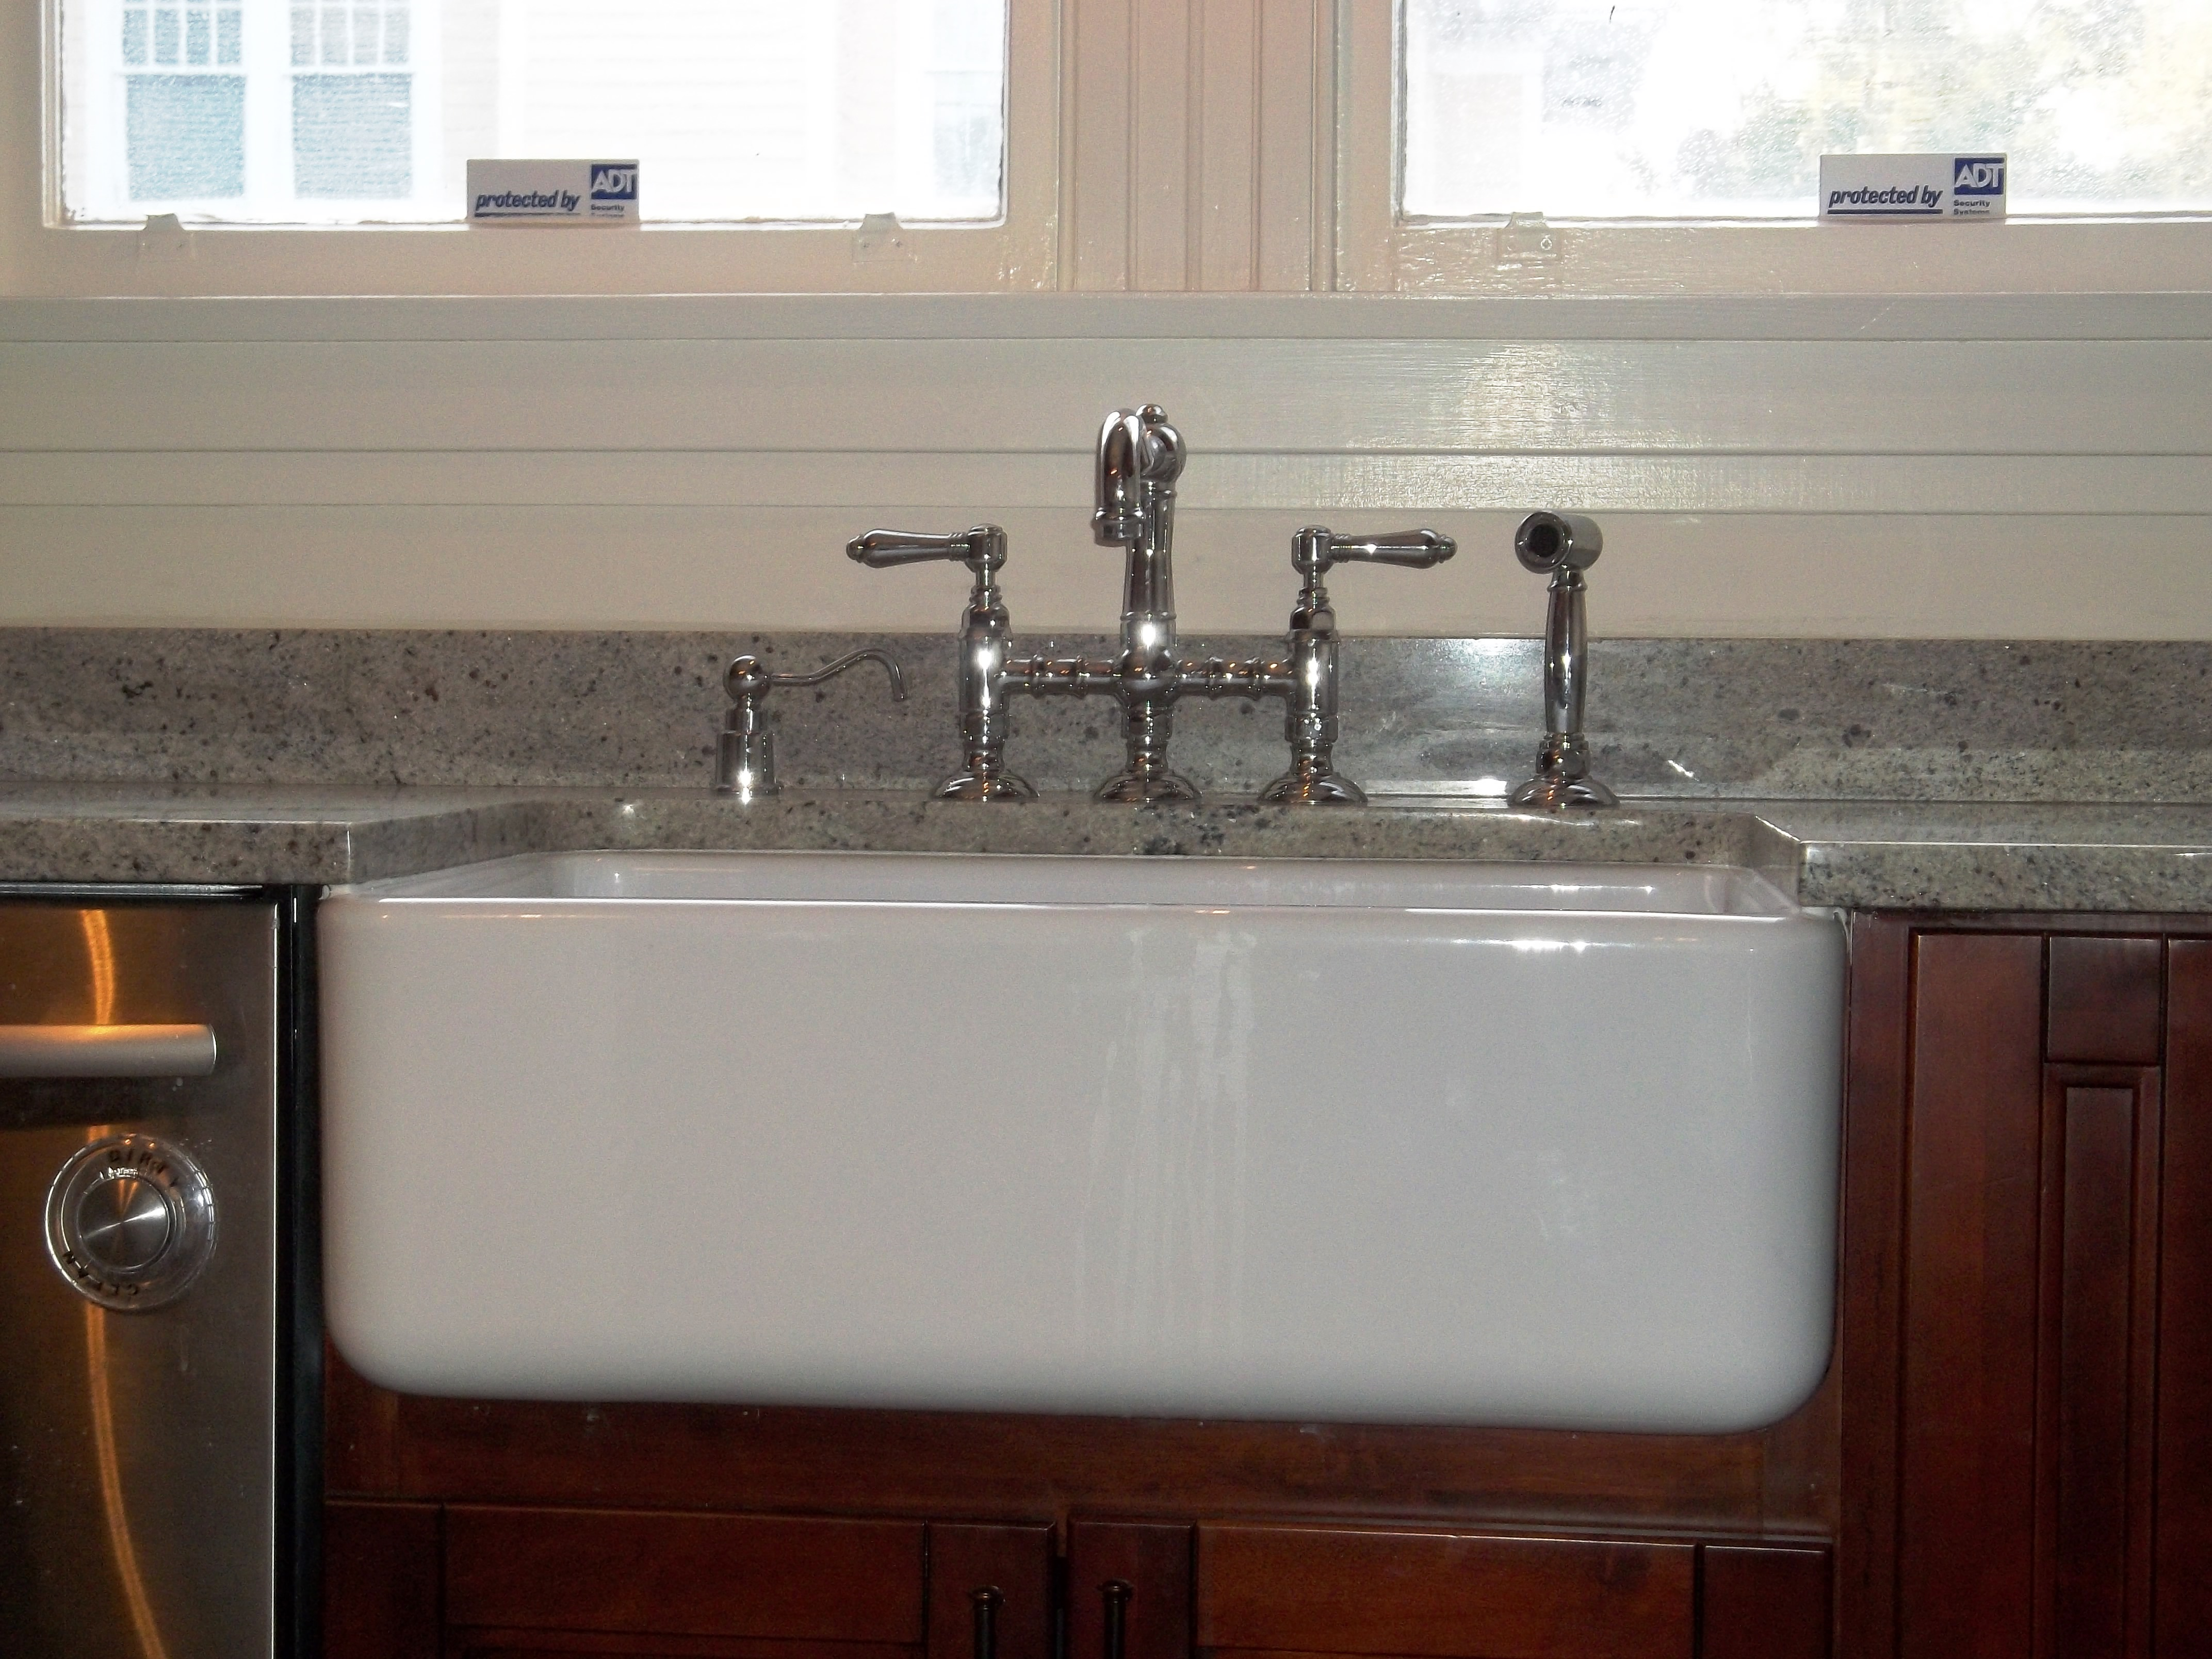 Handyman Sink Repair